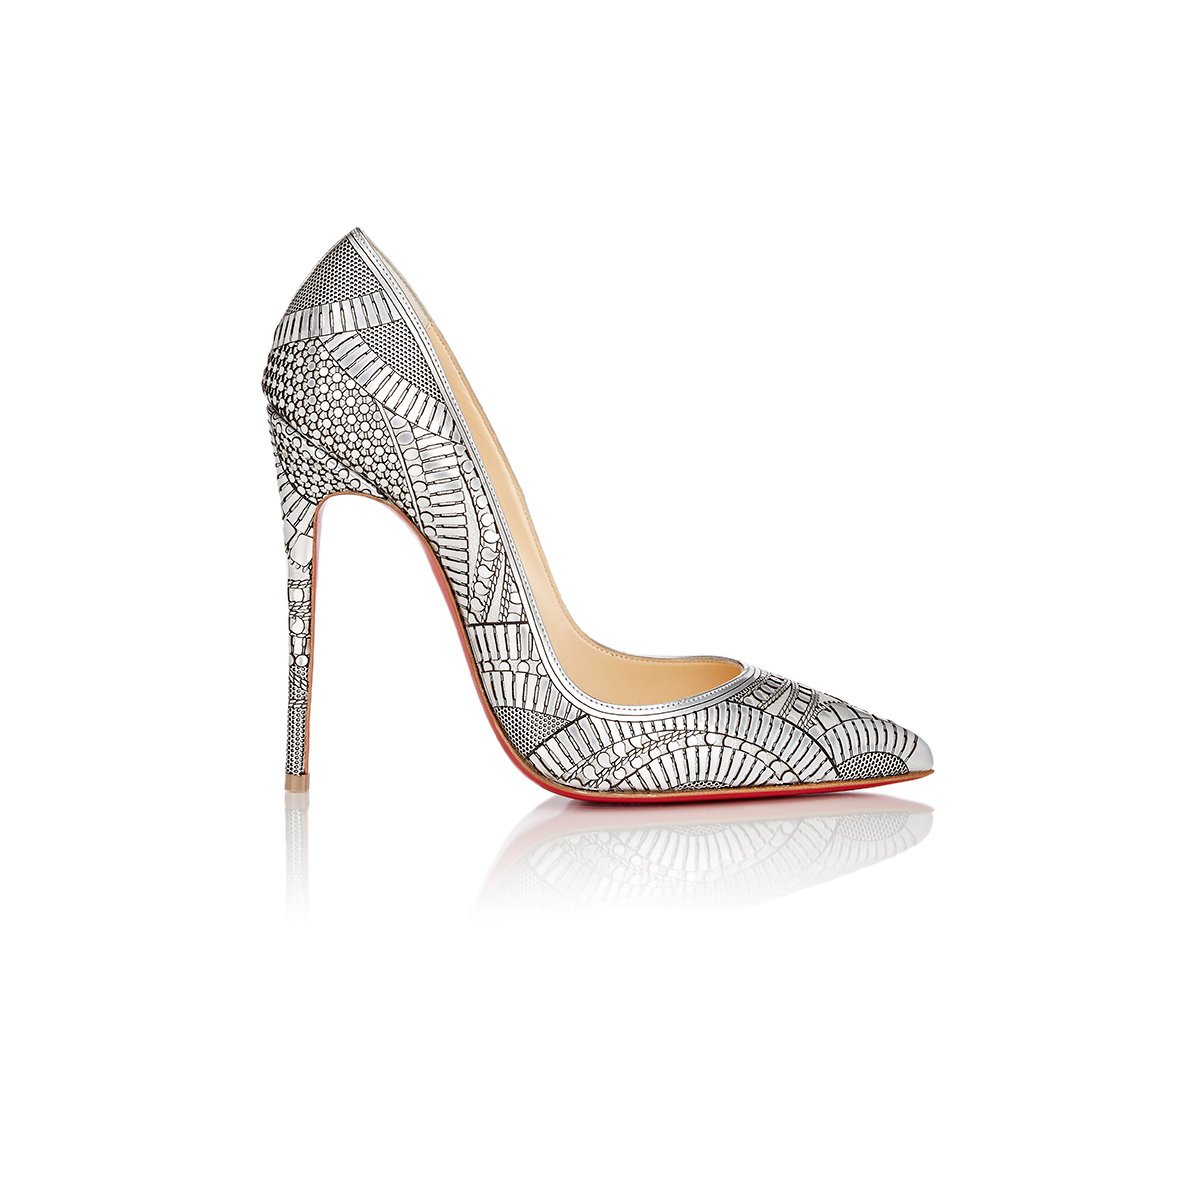 christian louboutin knock off - Christian louboutin Kristali Laser-Cut Leather Pumps in Silver | Lyst